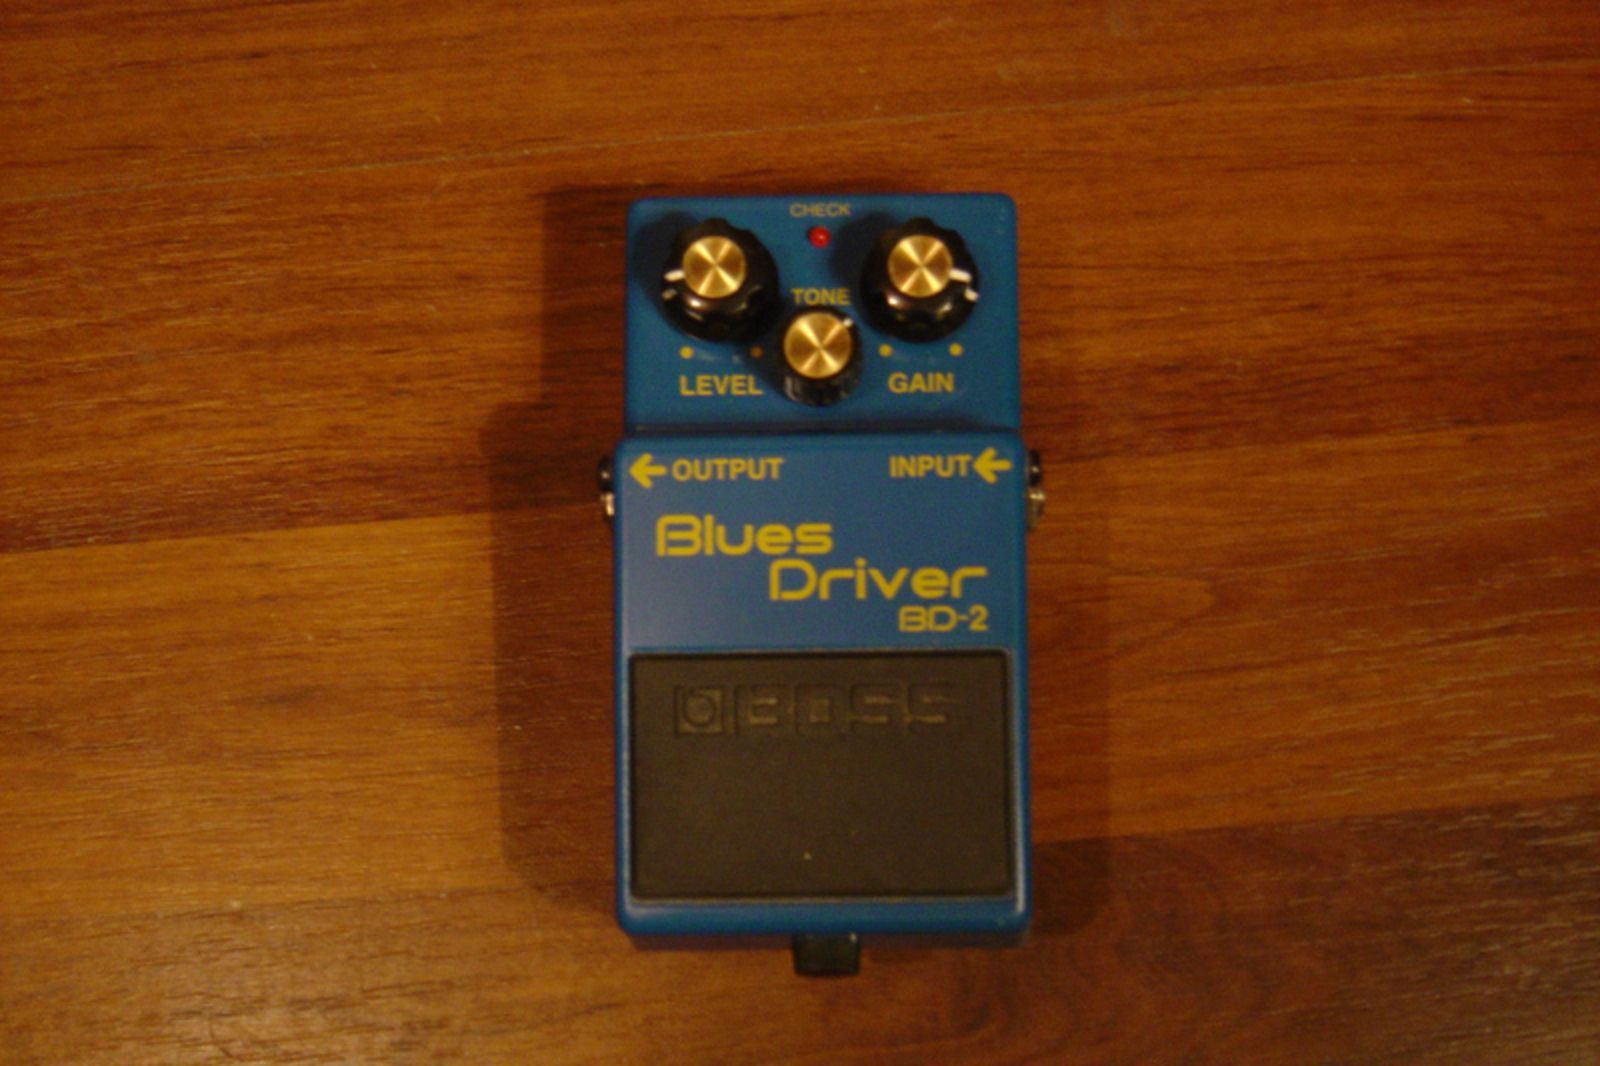 The perfect Tone For Blues